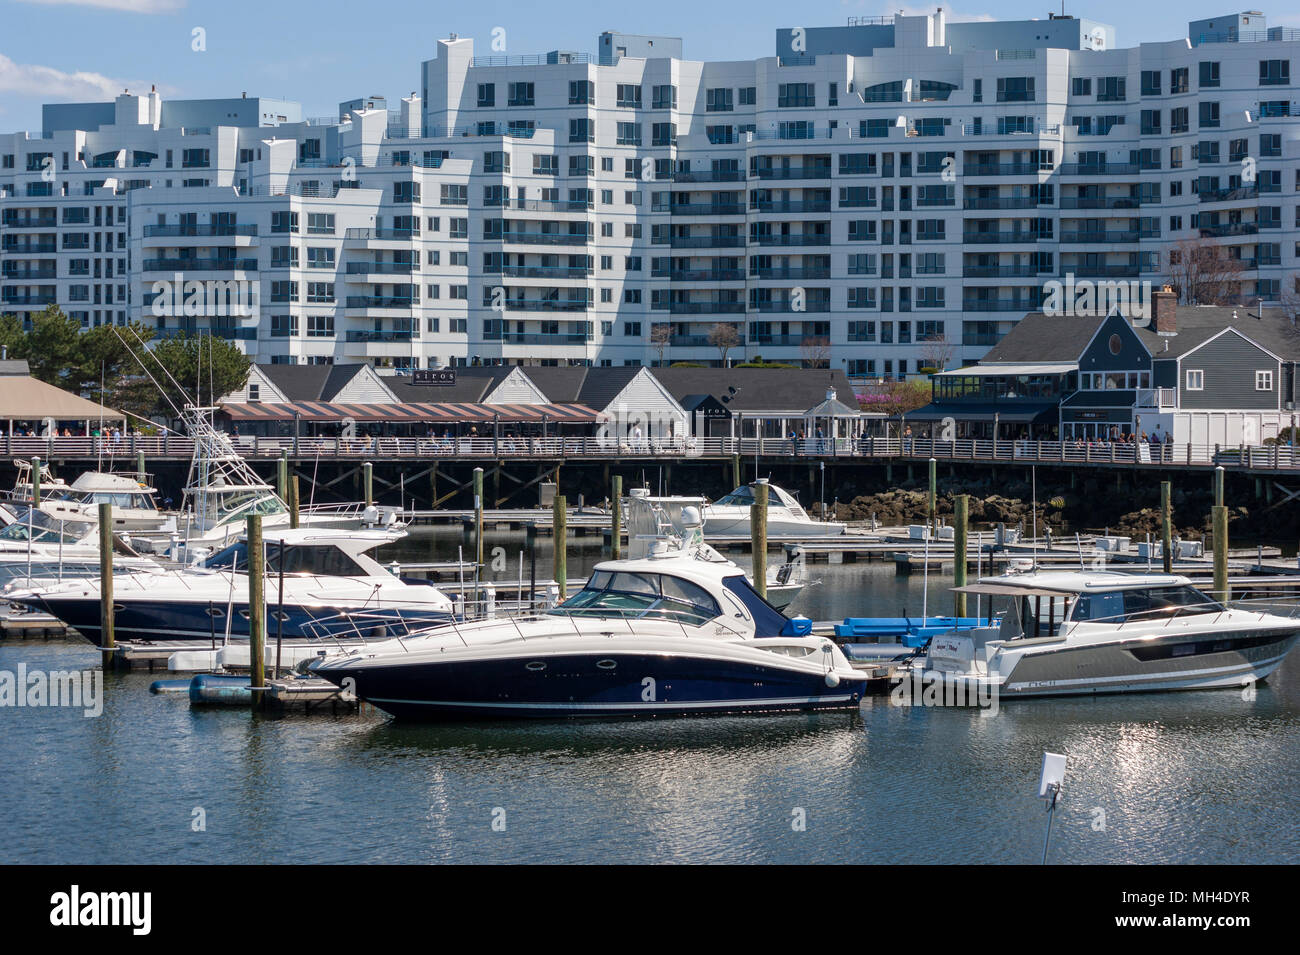 Yachts moored at Marina Bay docks, in front of a waterfront boardwalk, restaurants and condominium complex, in Quincy, Massachusetts, USA. Stock Photo